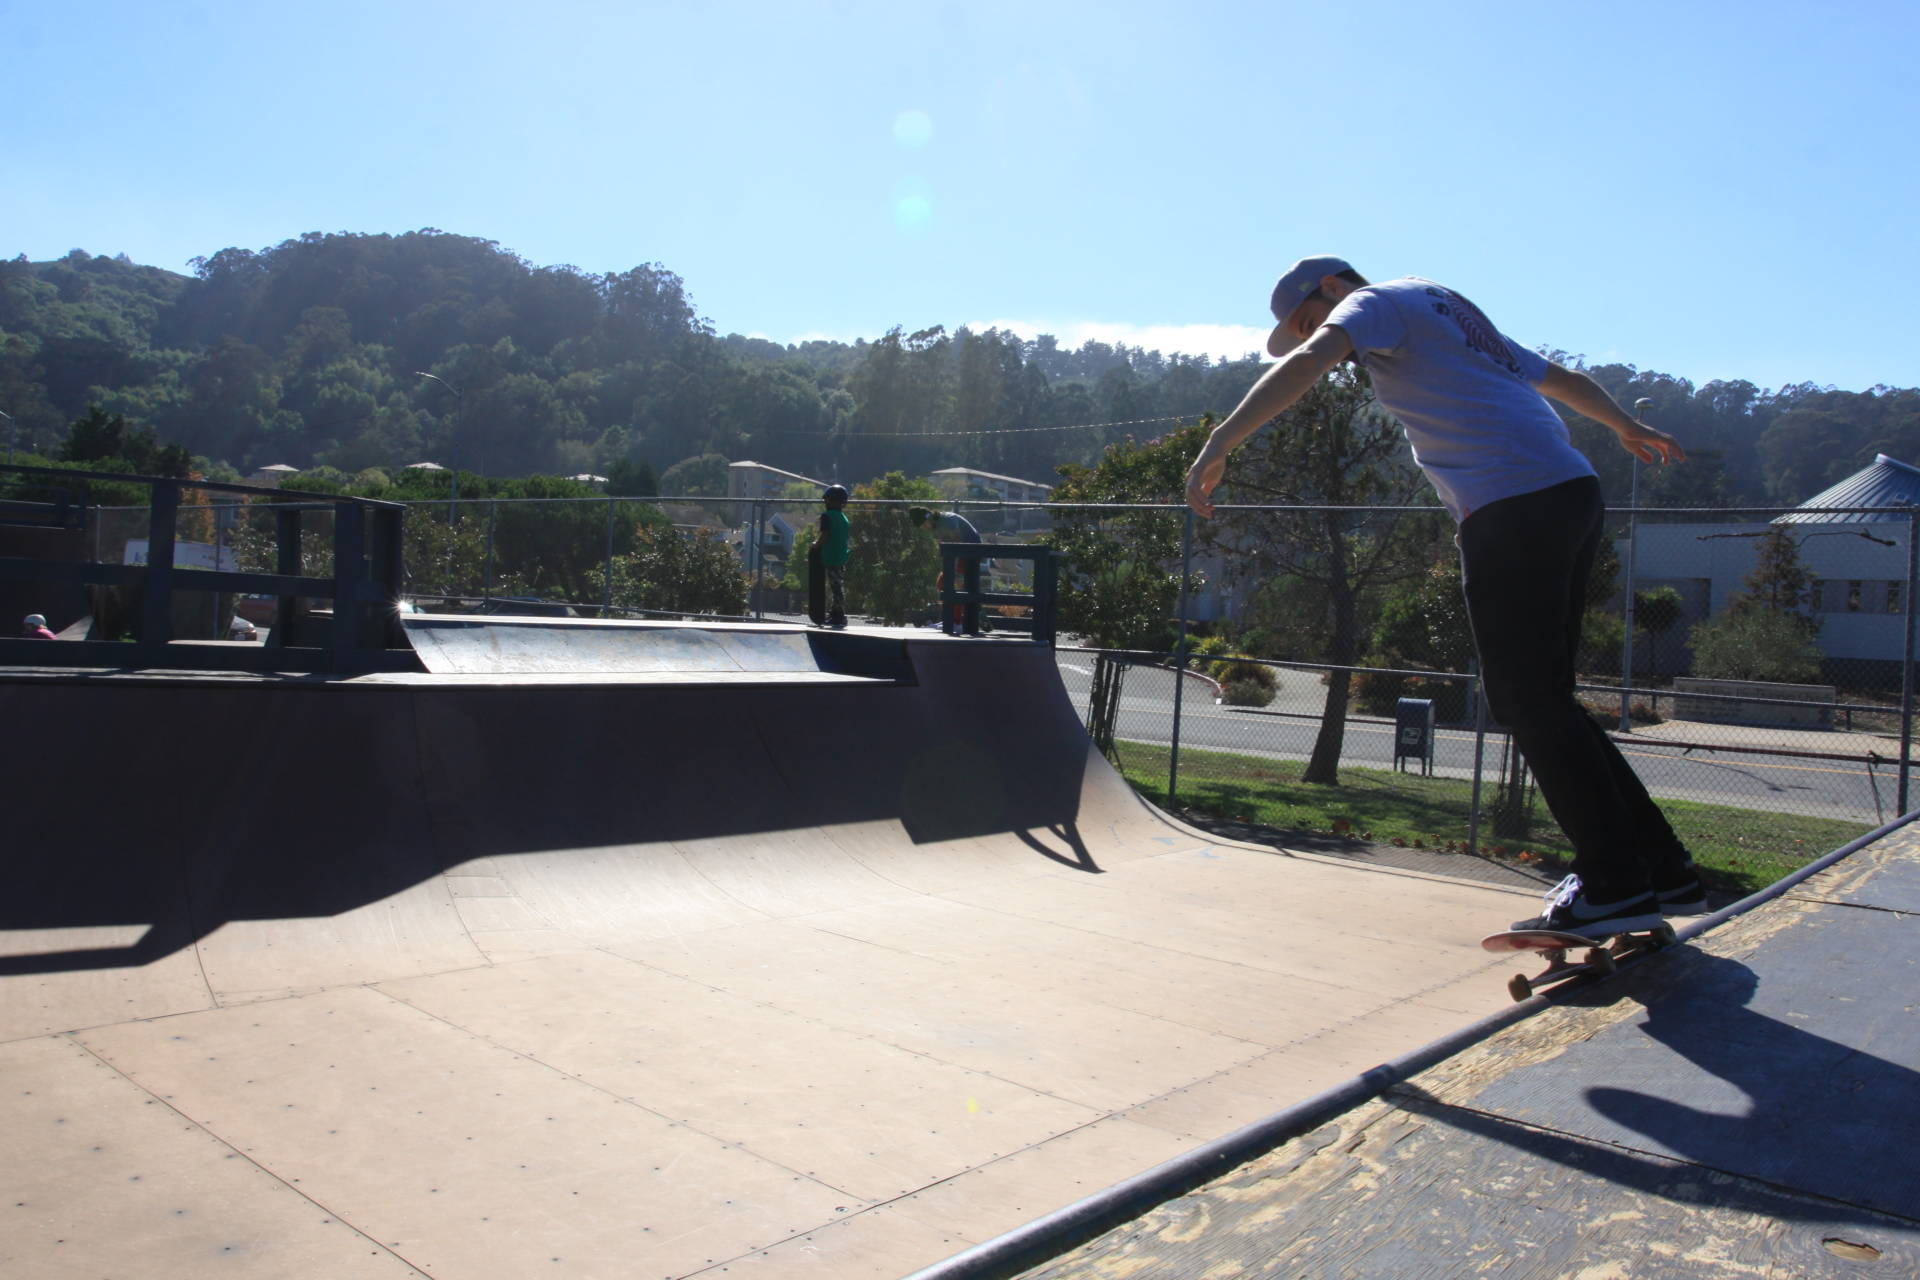 Kids and adults from Mill Valley, Marin City and other areas stopped by the newly reopened Marin City skate park on the corner of Drake and Donahue Streets in Marin City.  The park opened in 2014 but has been closed for two years after it lost funding and could not pay for liability insurance. A local skate shop came up with the initial insurance payment, and local organizers now have to fundraise to cover the rest.  Shia Levitt/KQED